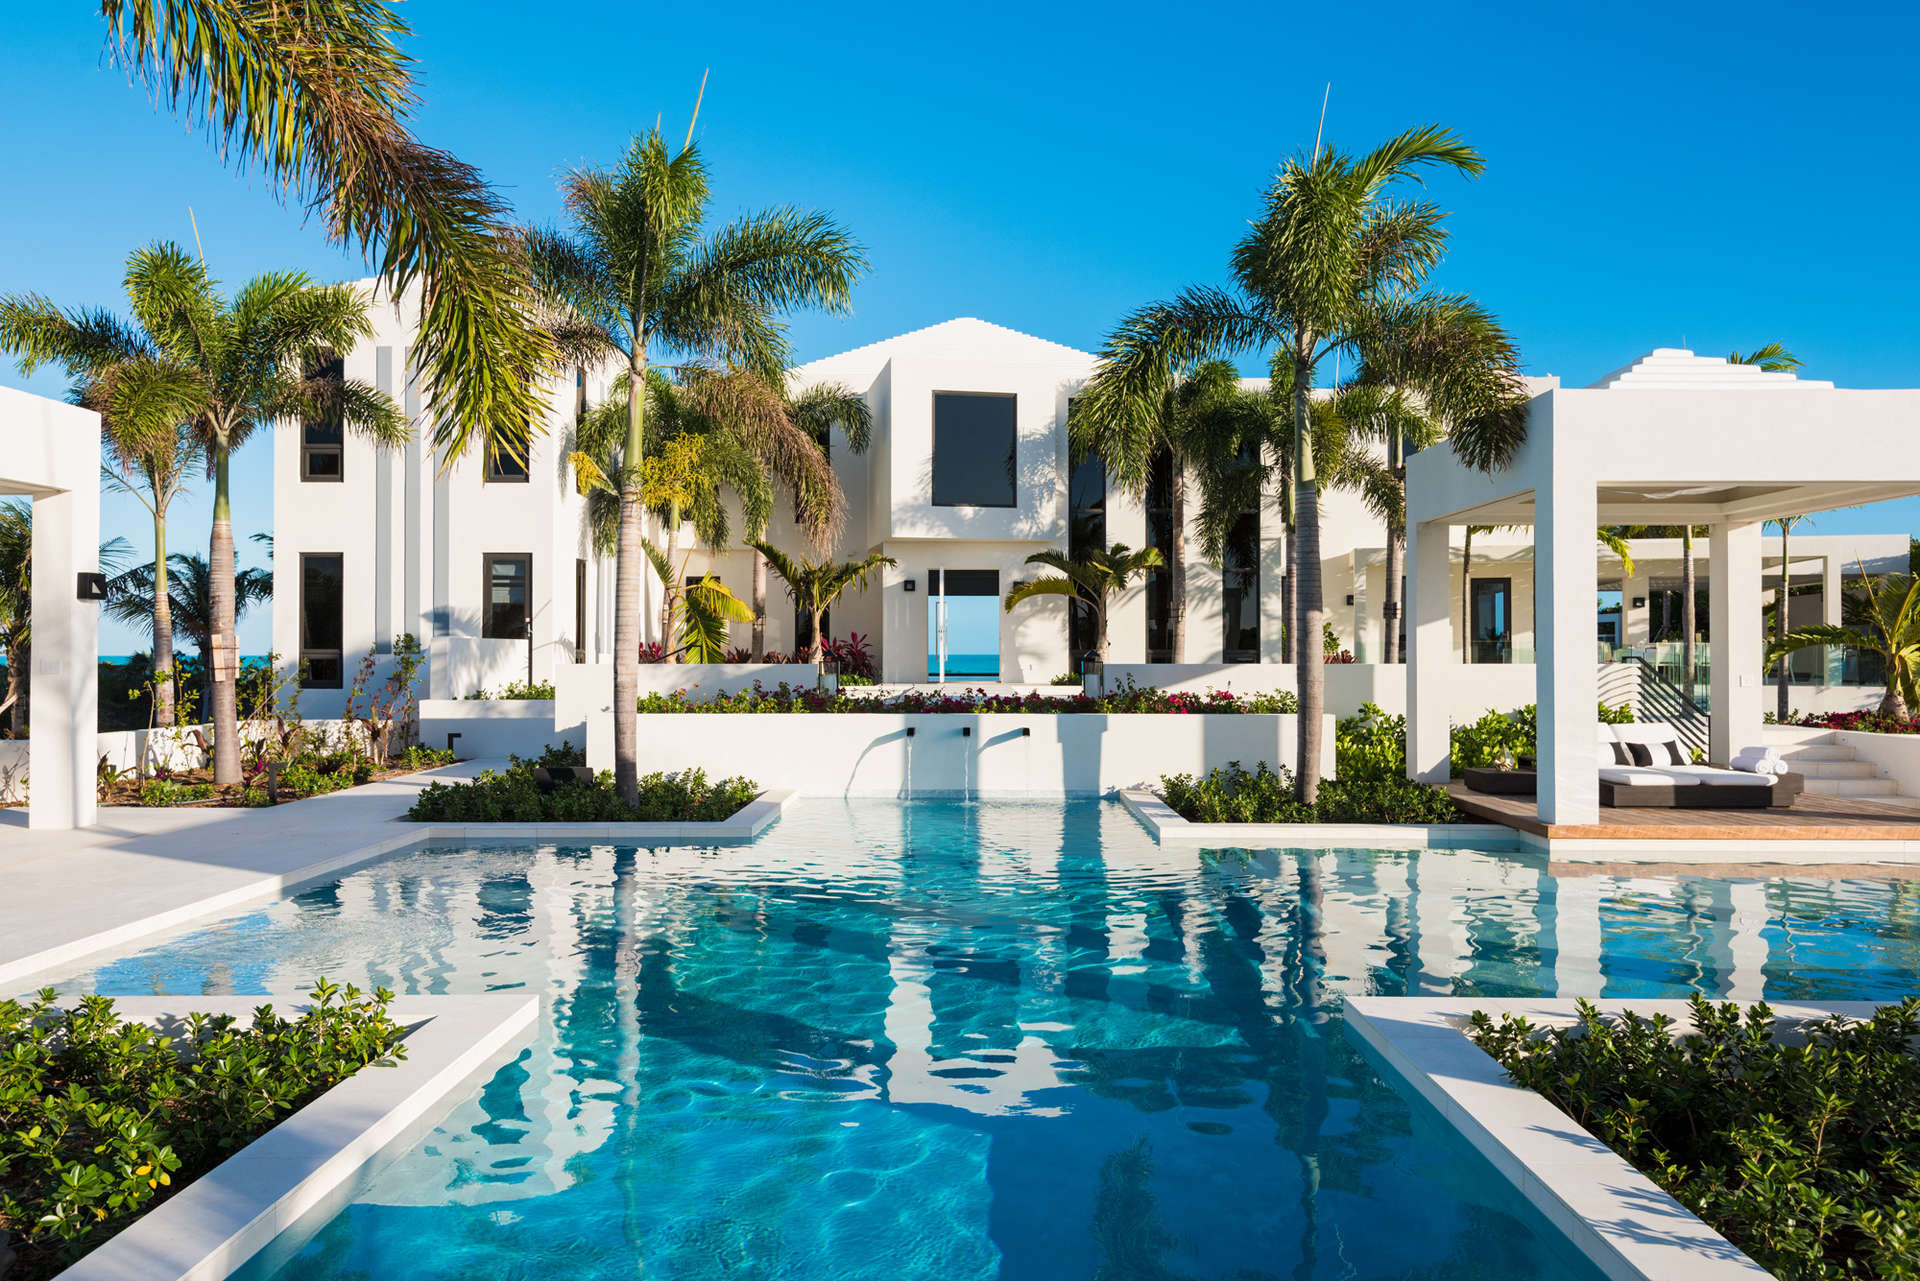 Luxury villa rentals caribbean - Turks and caicos - Providenciales - Long bay - Triton Luxury Beach Villa - Image 1/42